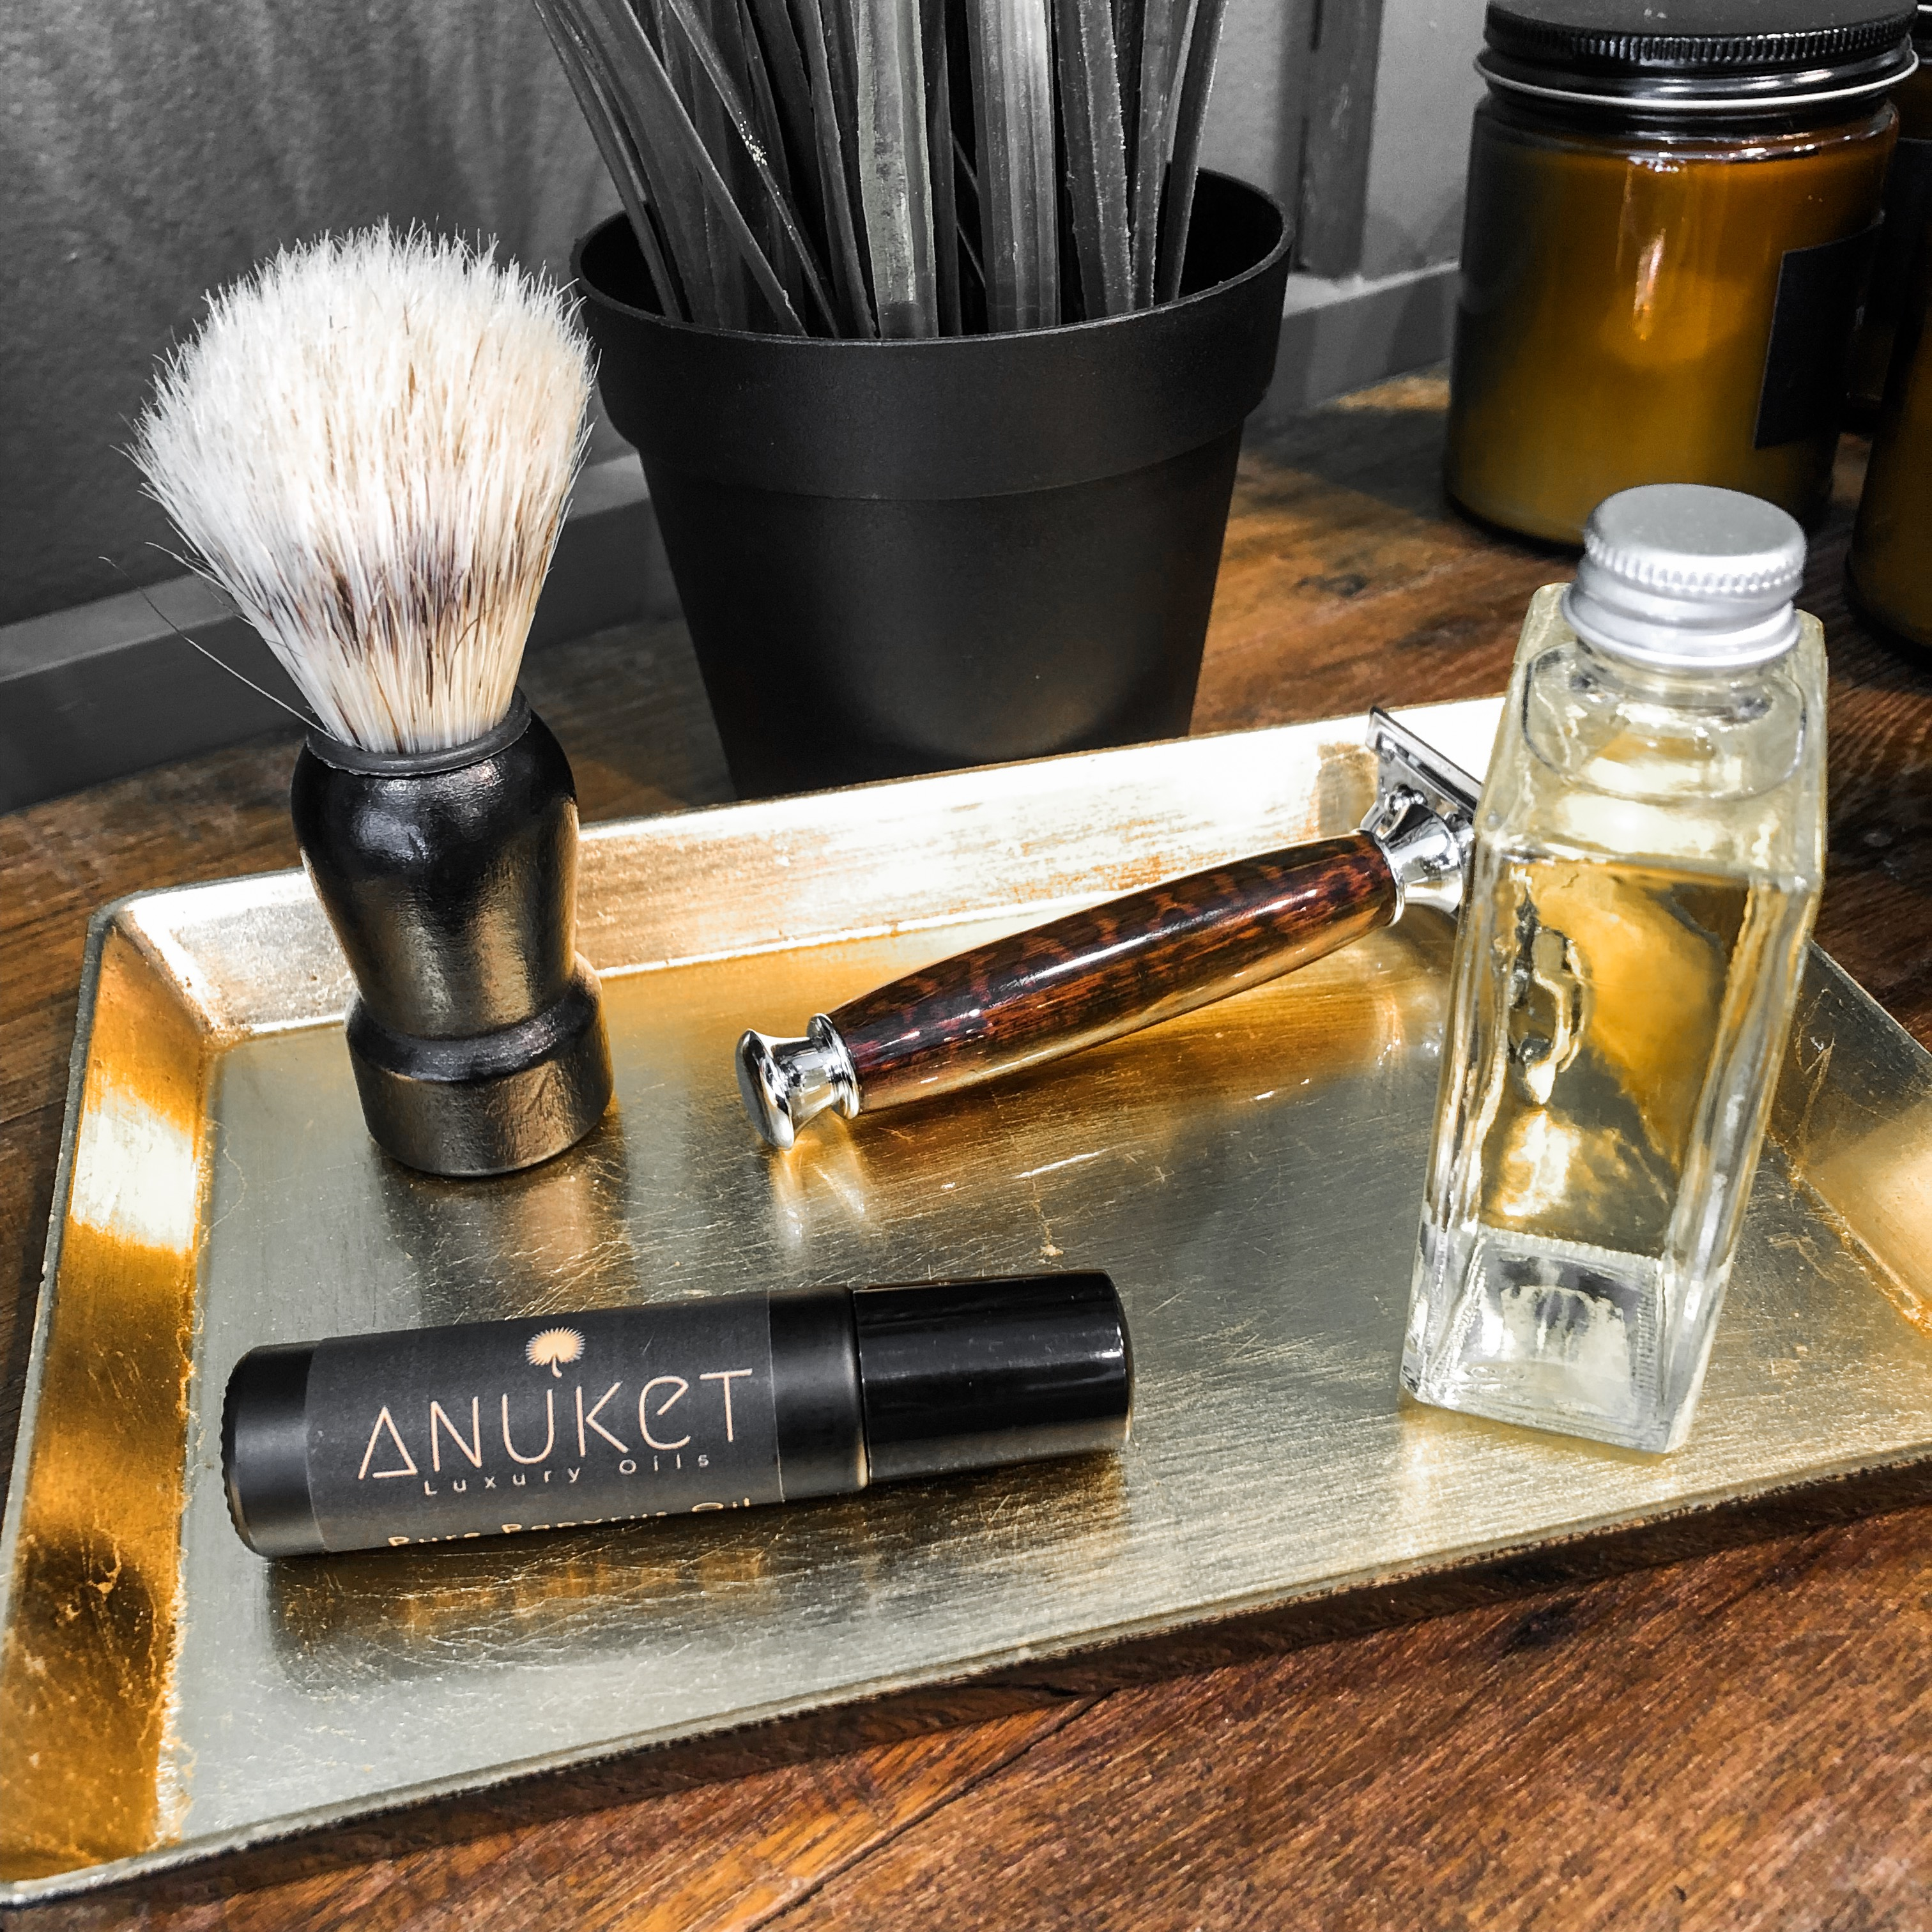 Golden tray with Anuket roll-on fragrance bottle, safety razor, aftershave, and shave brush.